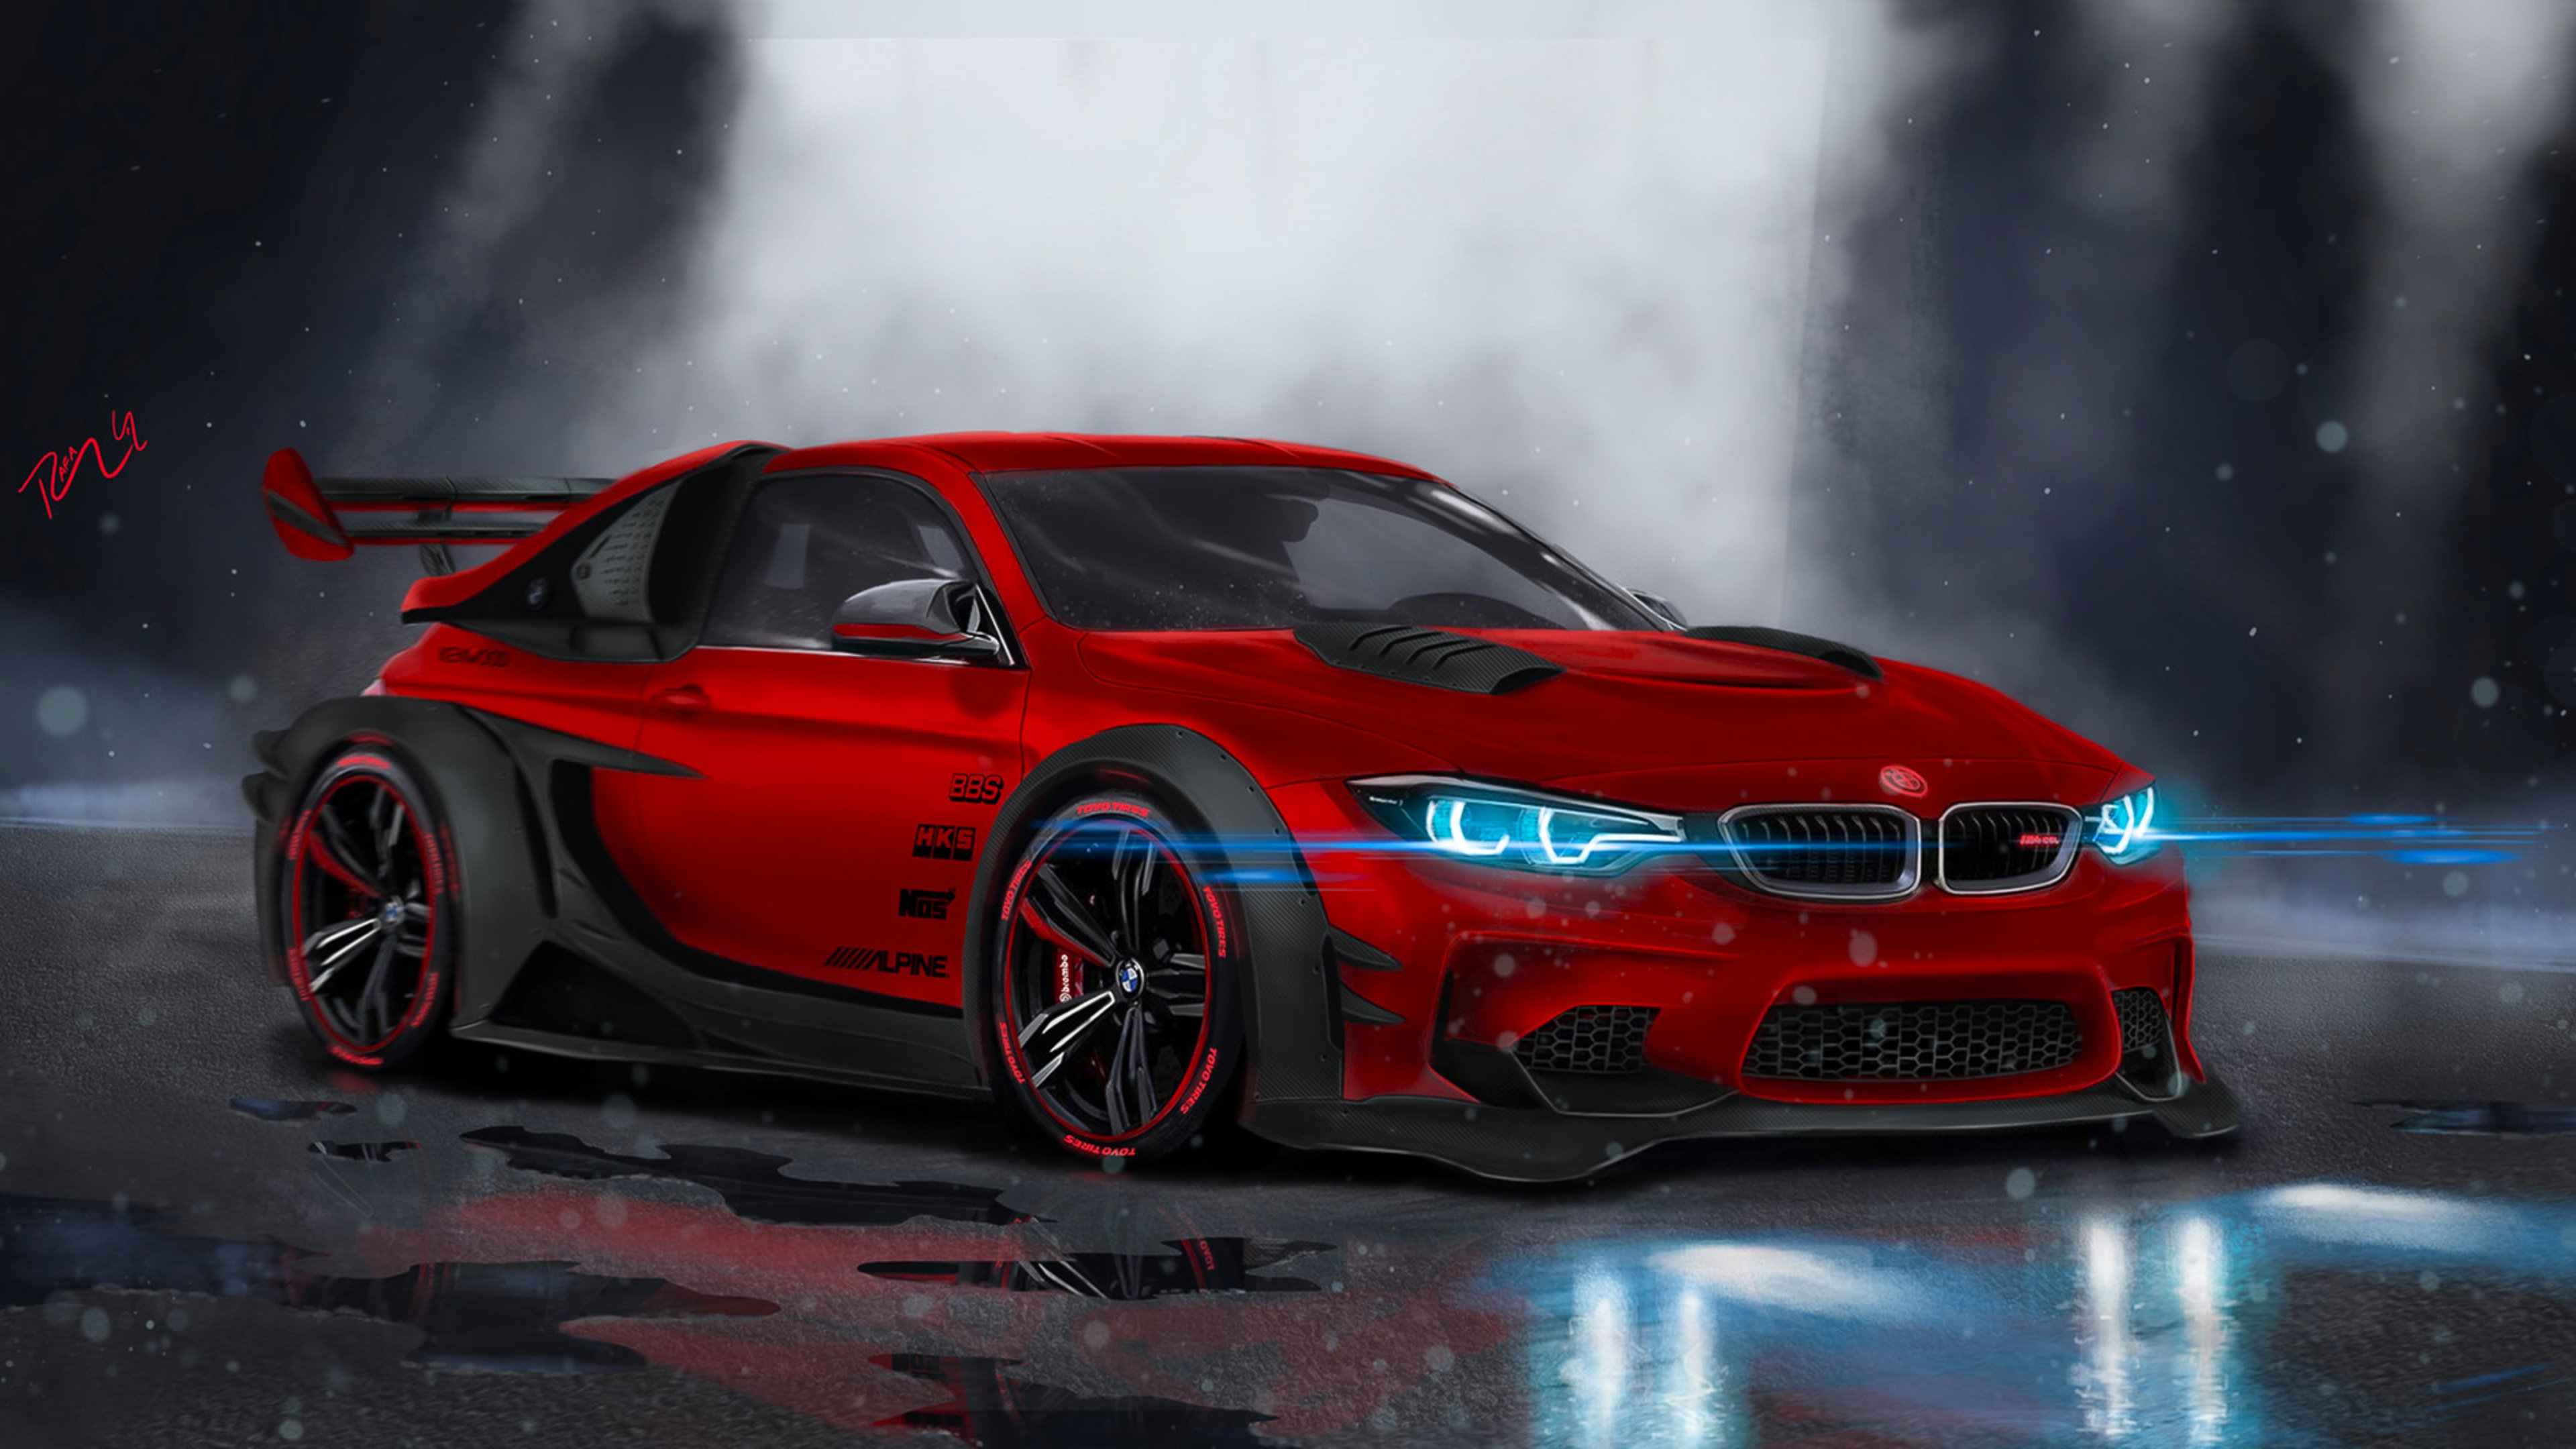 Bmw Modified Cars Wallpapers bmw m4 highly modified wallpaper cars hd